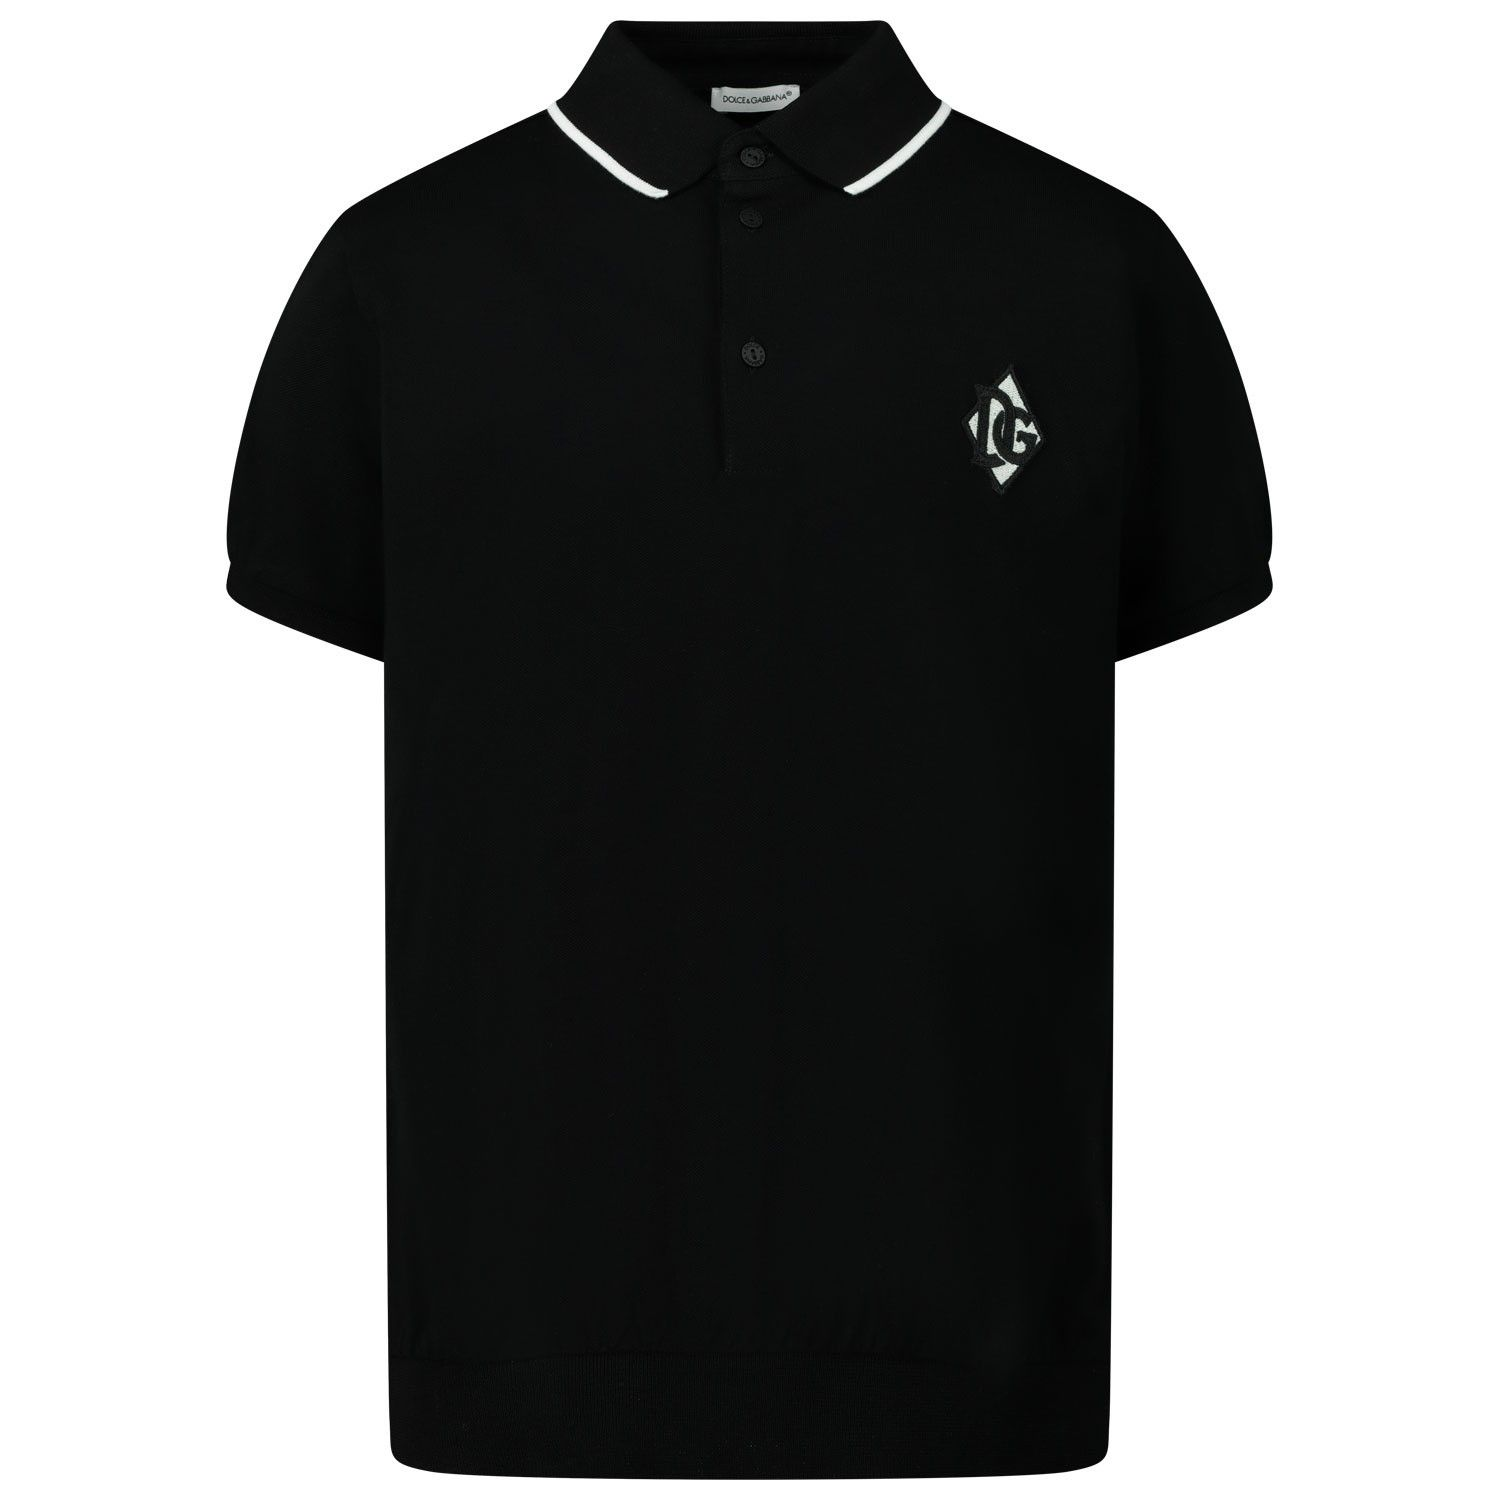 Picture of Dolce & Gabbana L4JTBJ / G7VYG kids polo shirt black